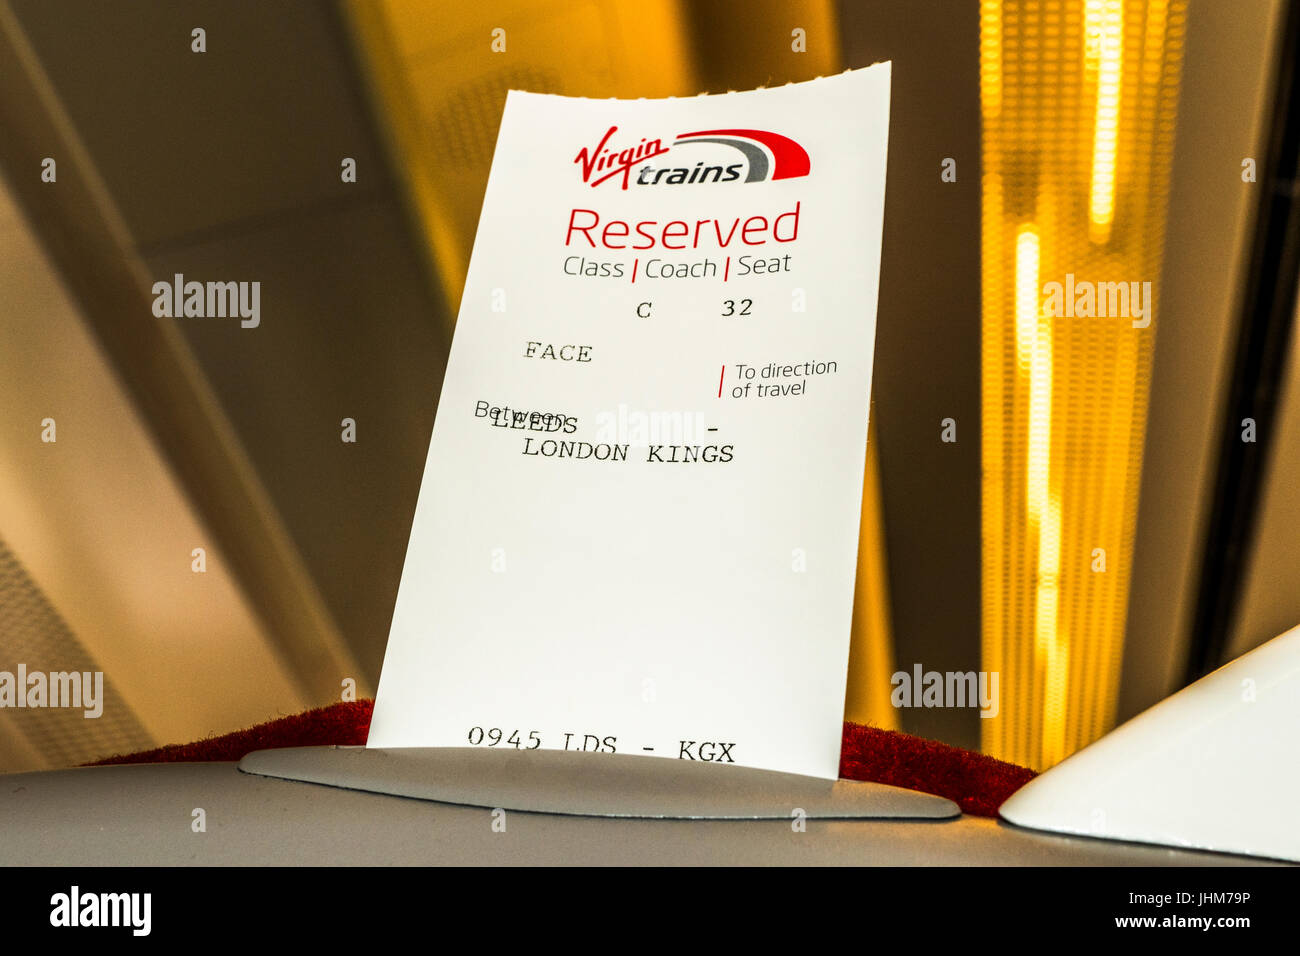 A reserved seat ticket in the seat of Virgin Trains between London Kings Cross and Leeds, England, UK. - Stock Image